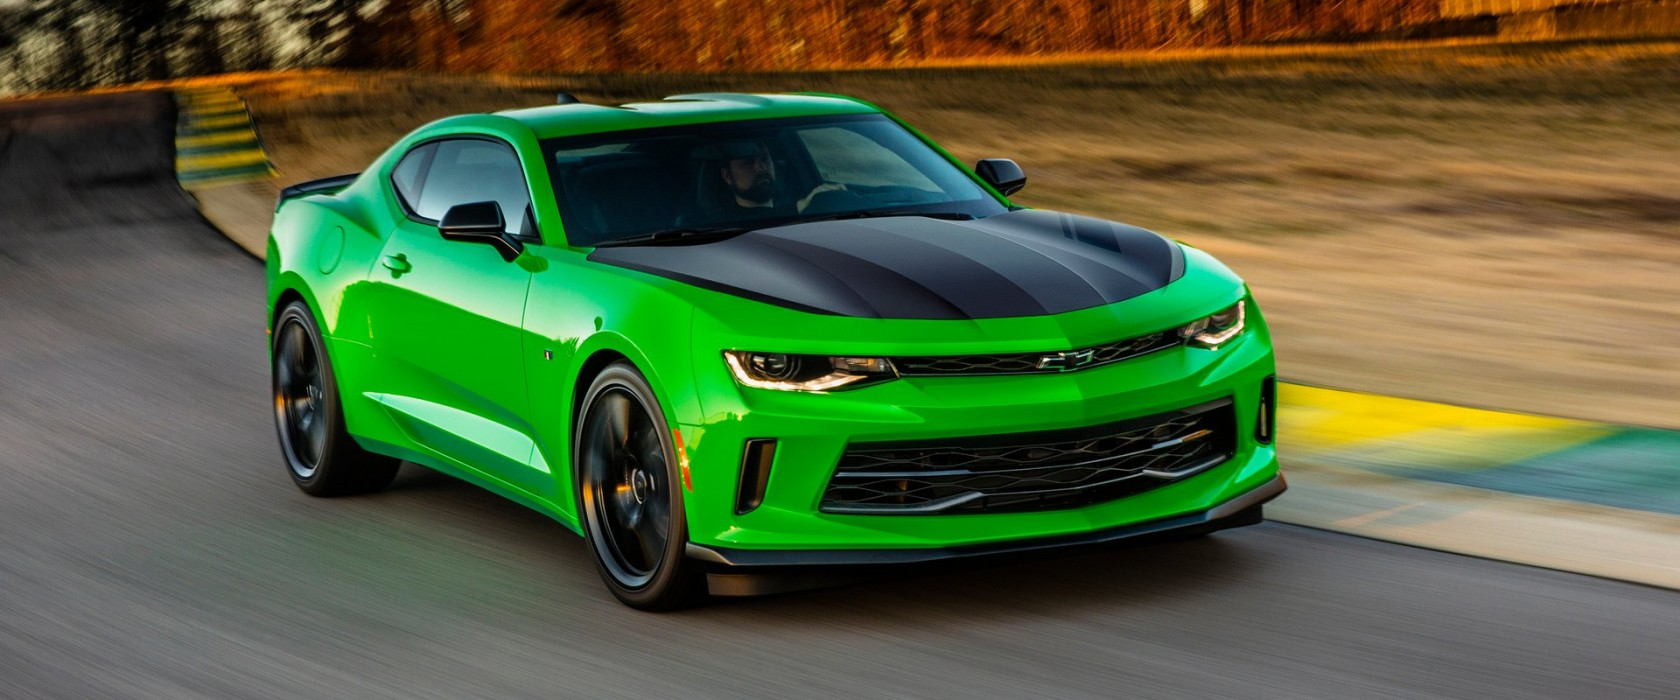 2017 Chevrolet Camaro 1LE performance package will be available